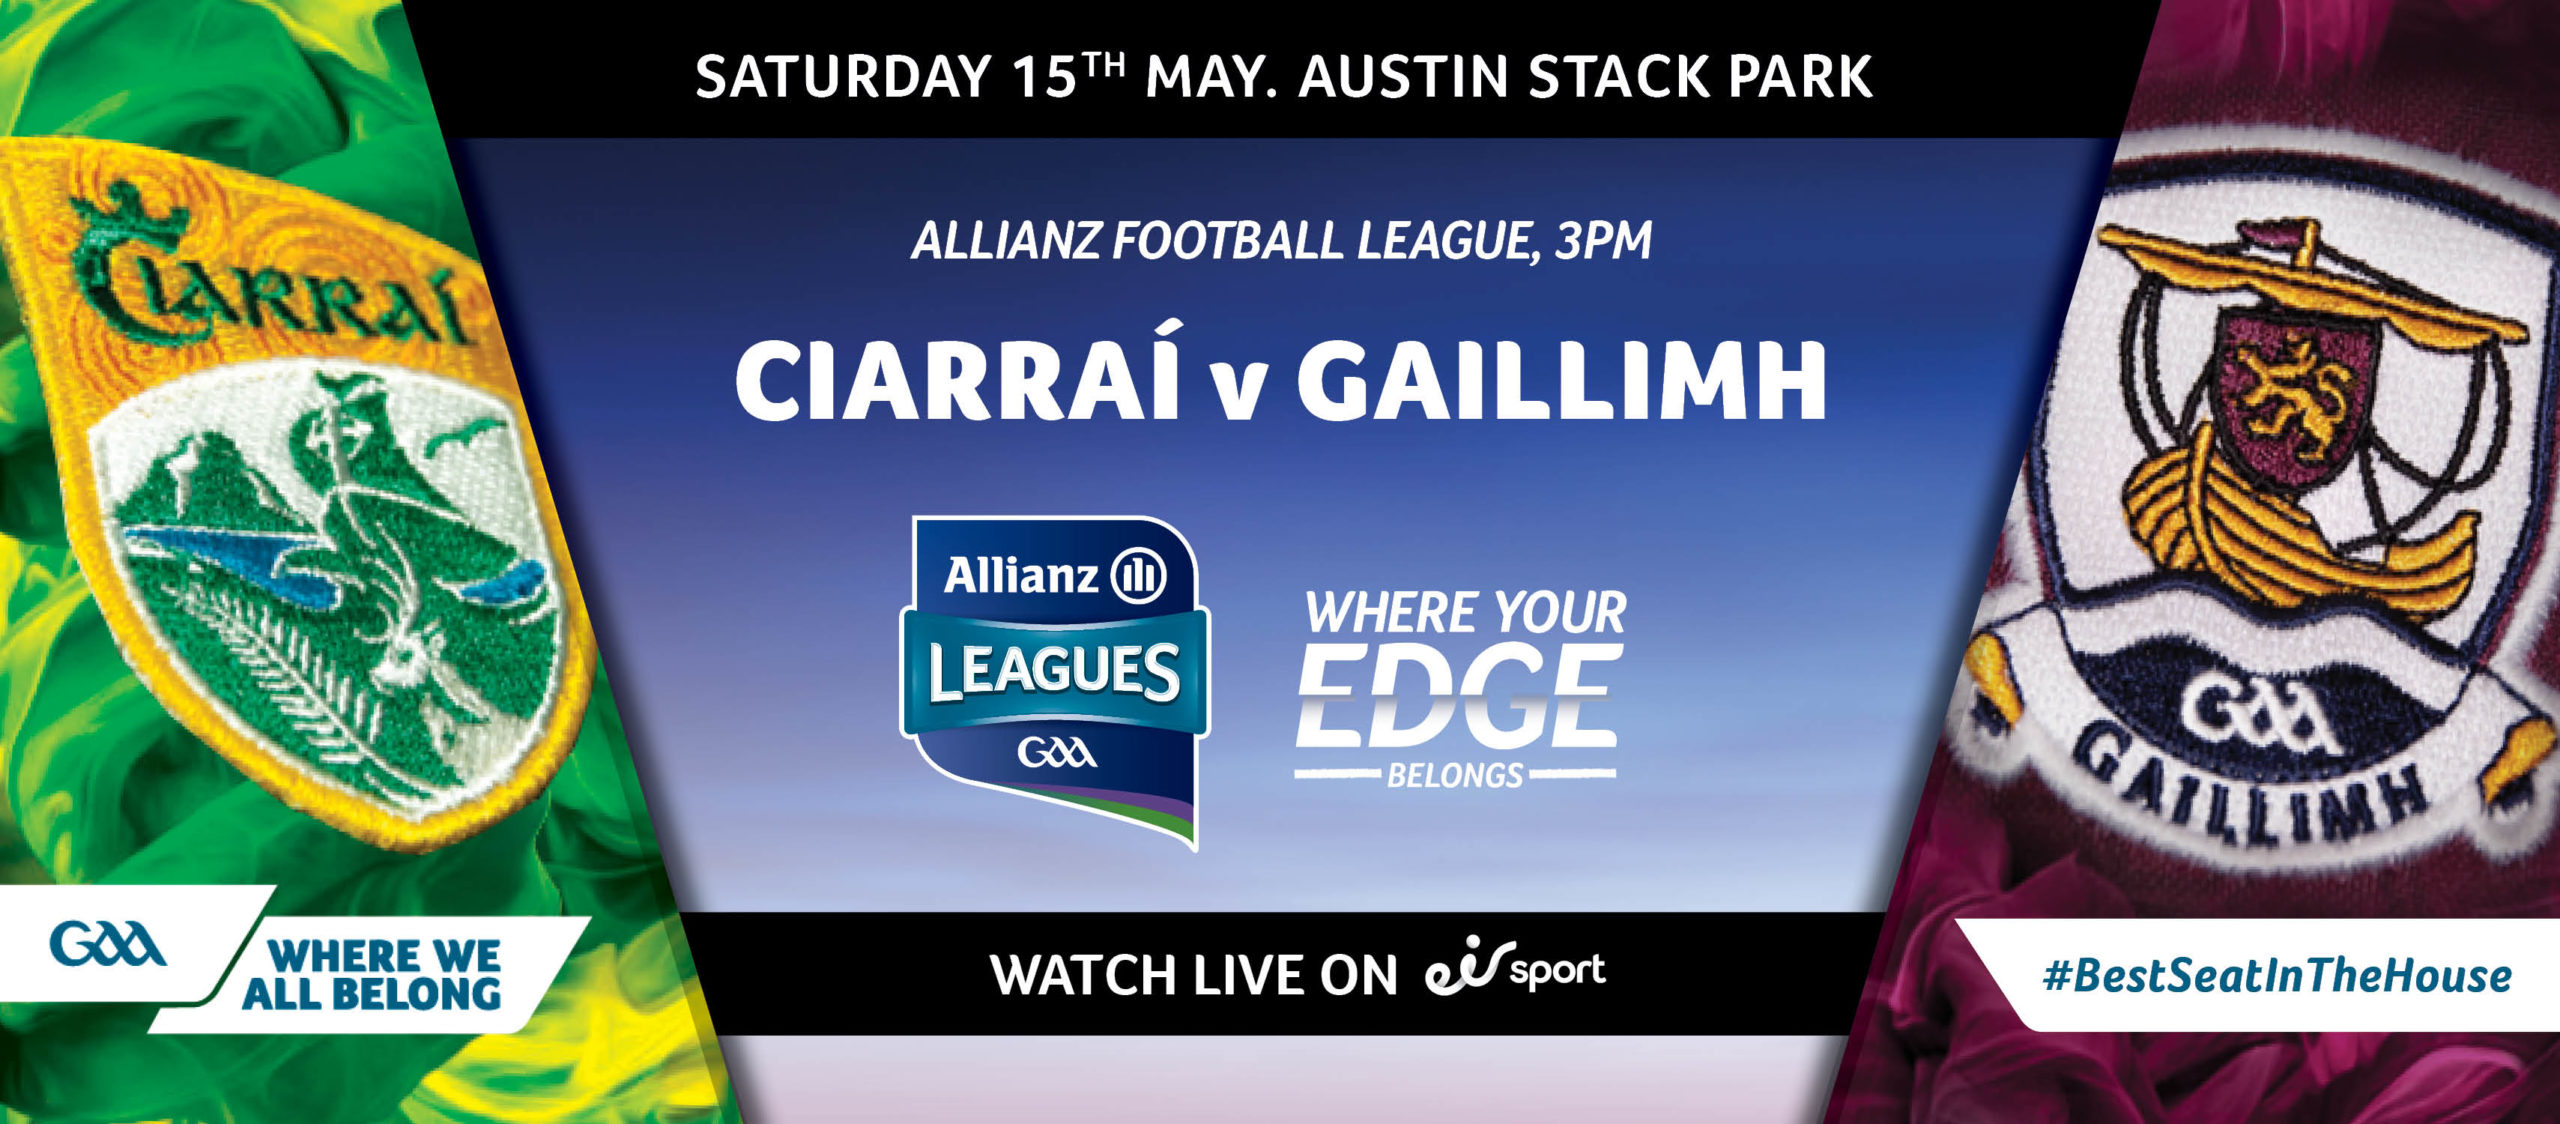 2021 Allianz Football League Division 1 South – Kerry v Galway